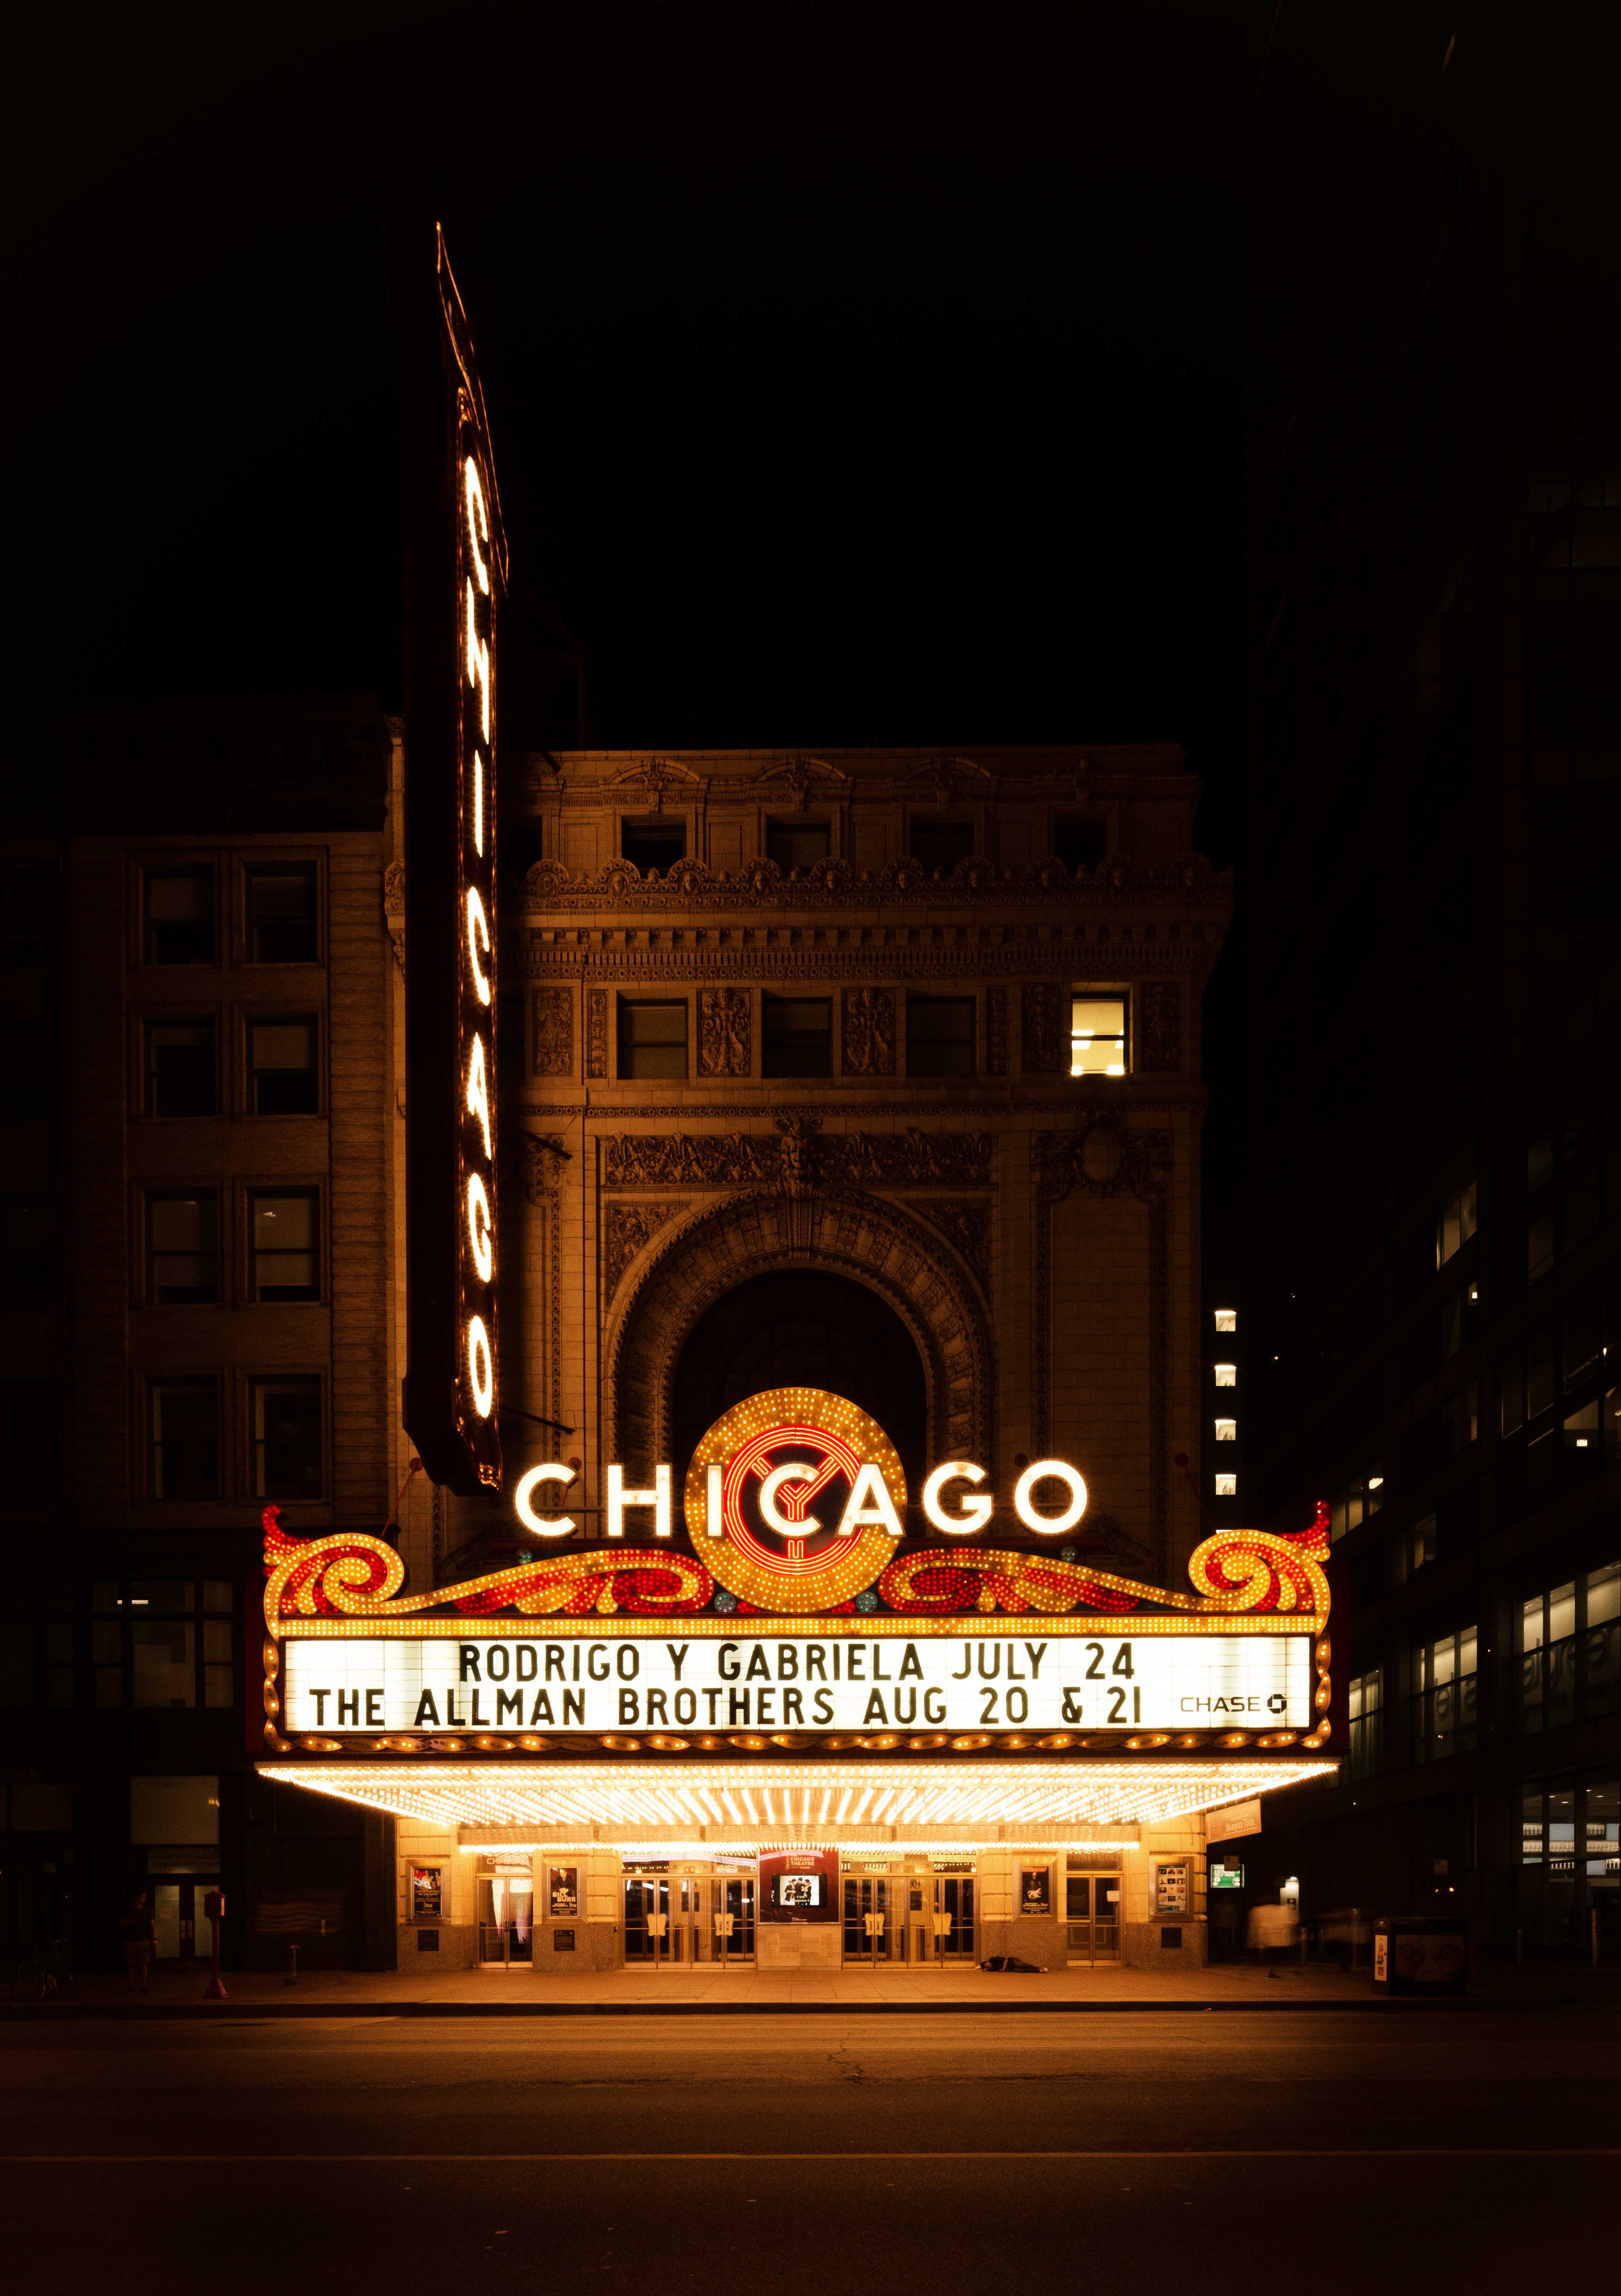 Chicago Theater Facade